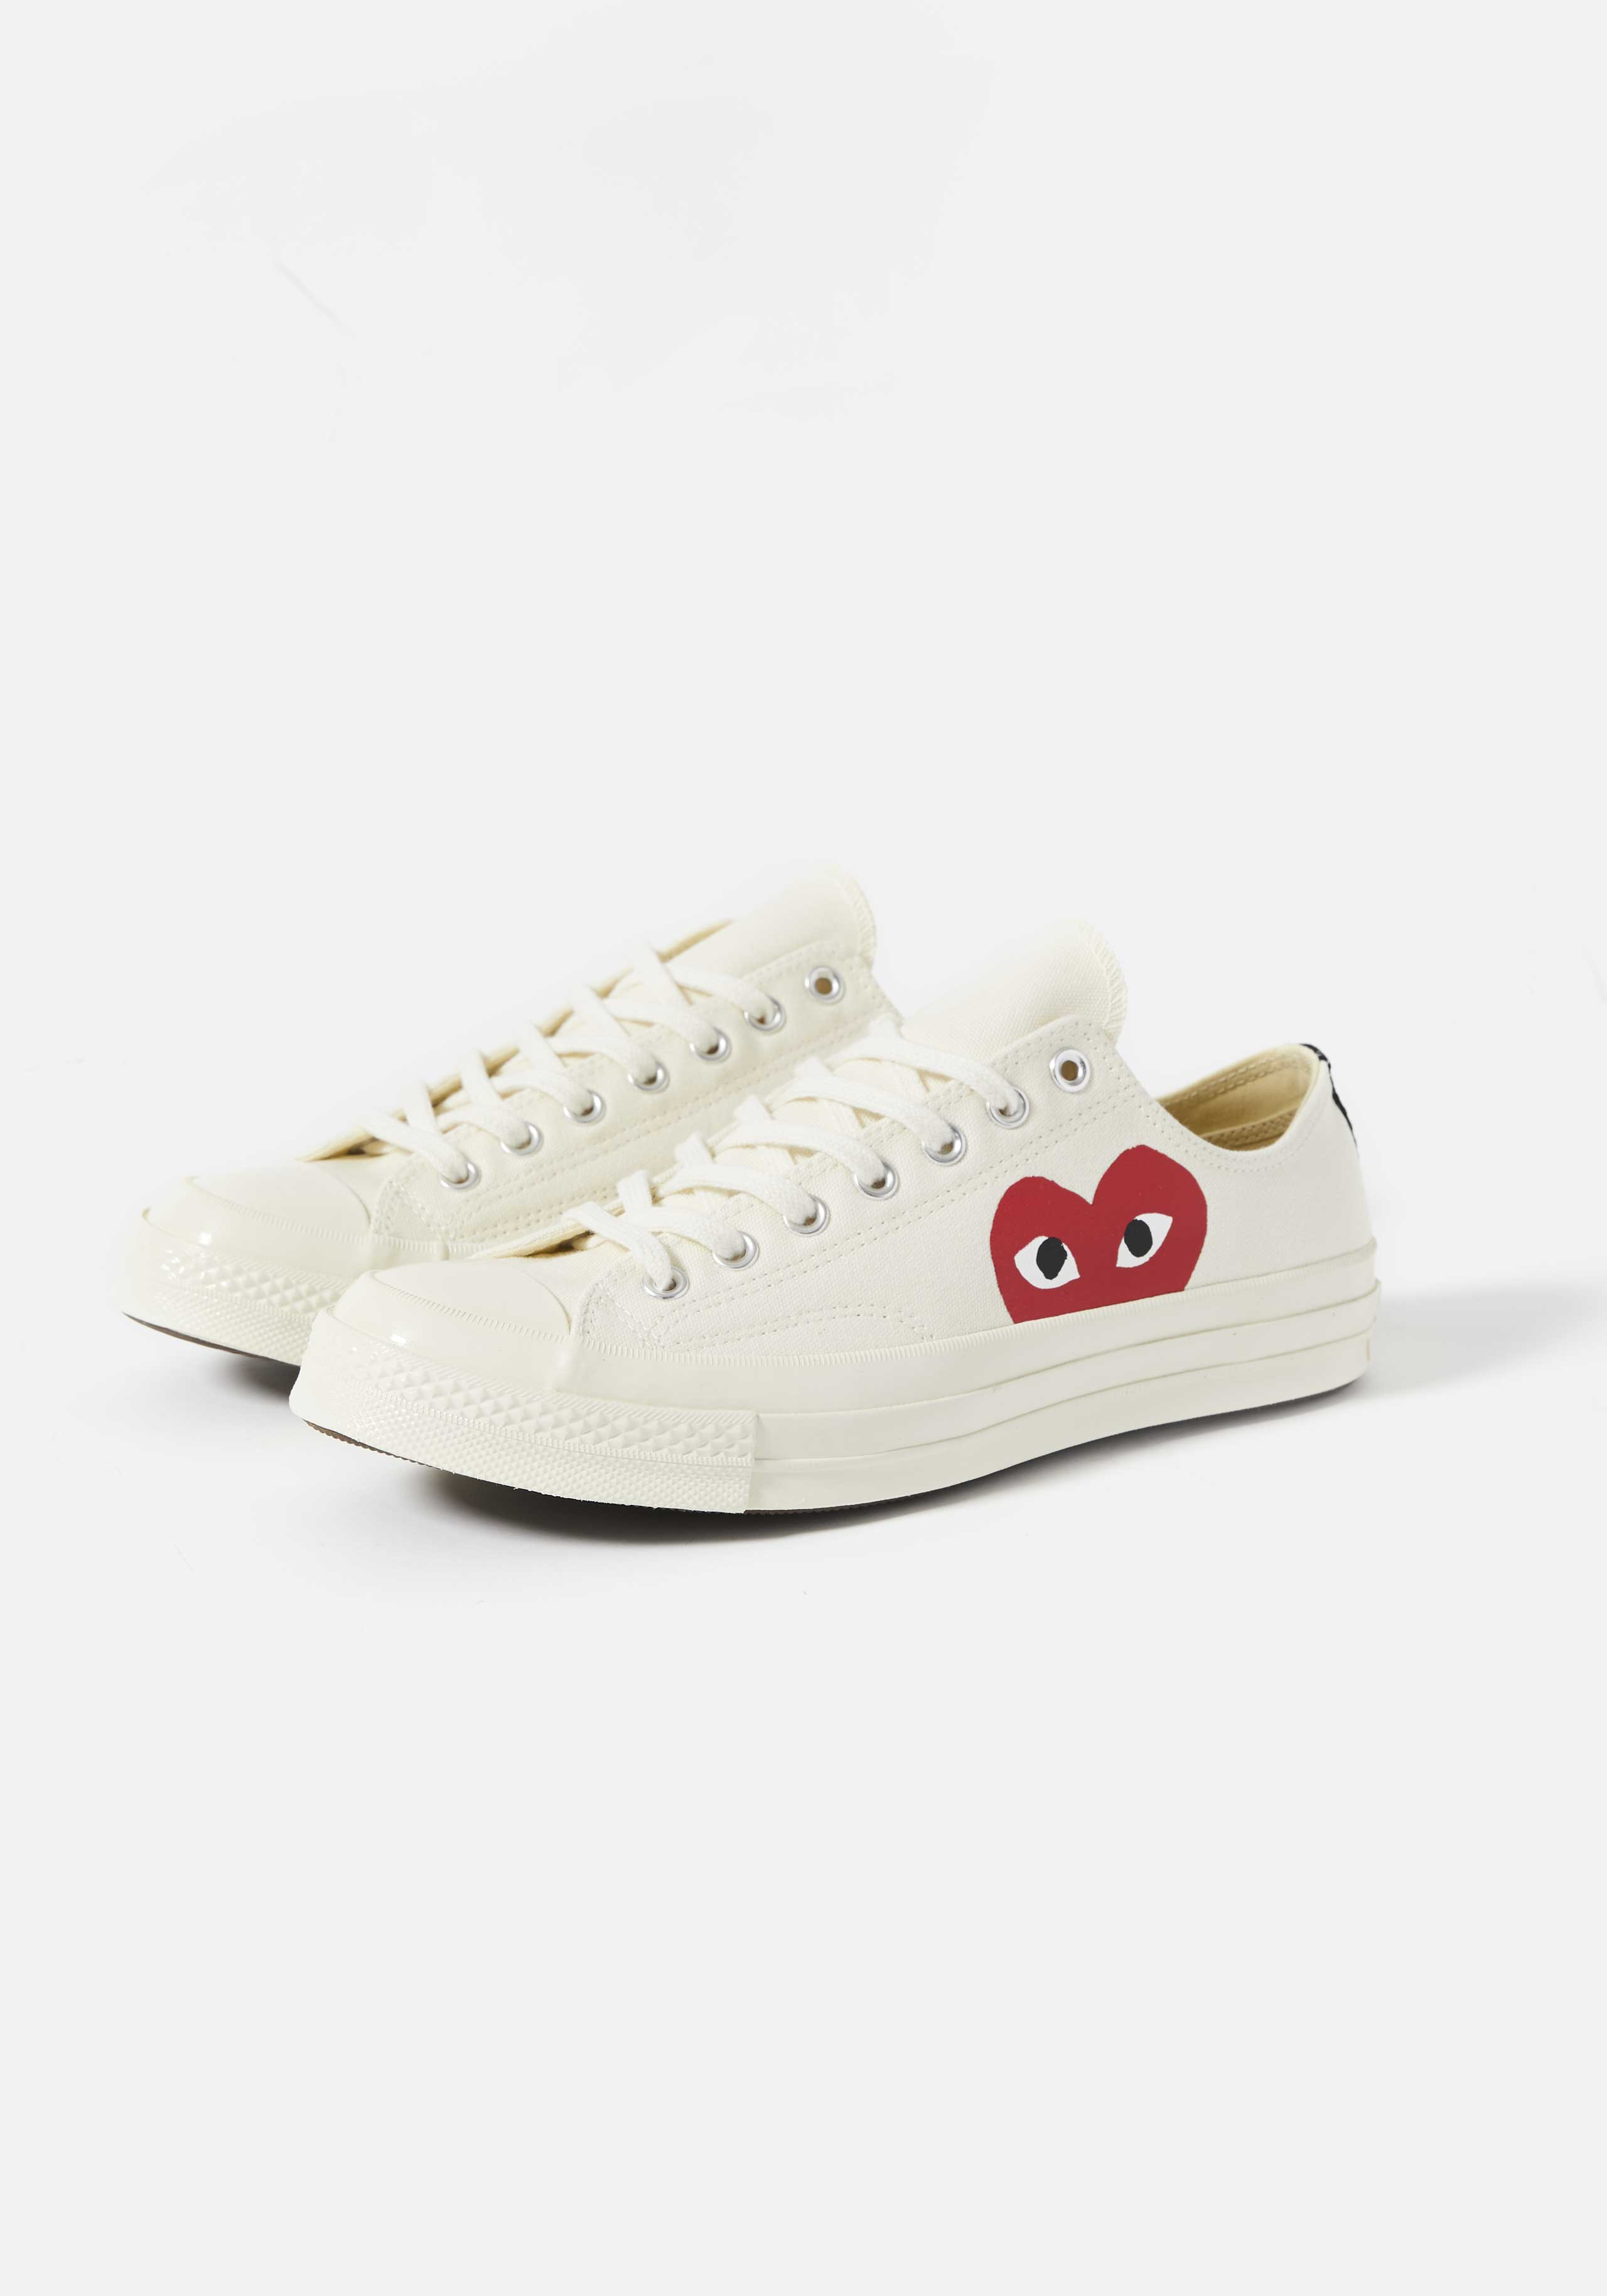 cdg play converse red heart 70s low 2